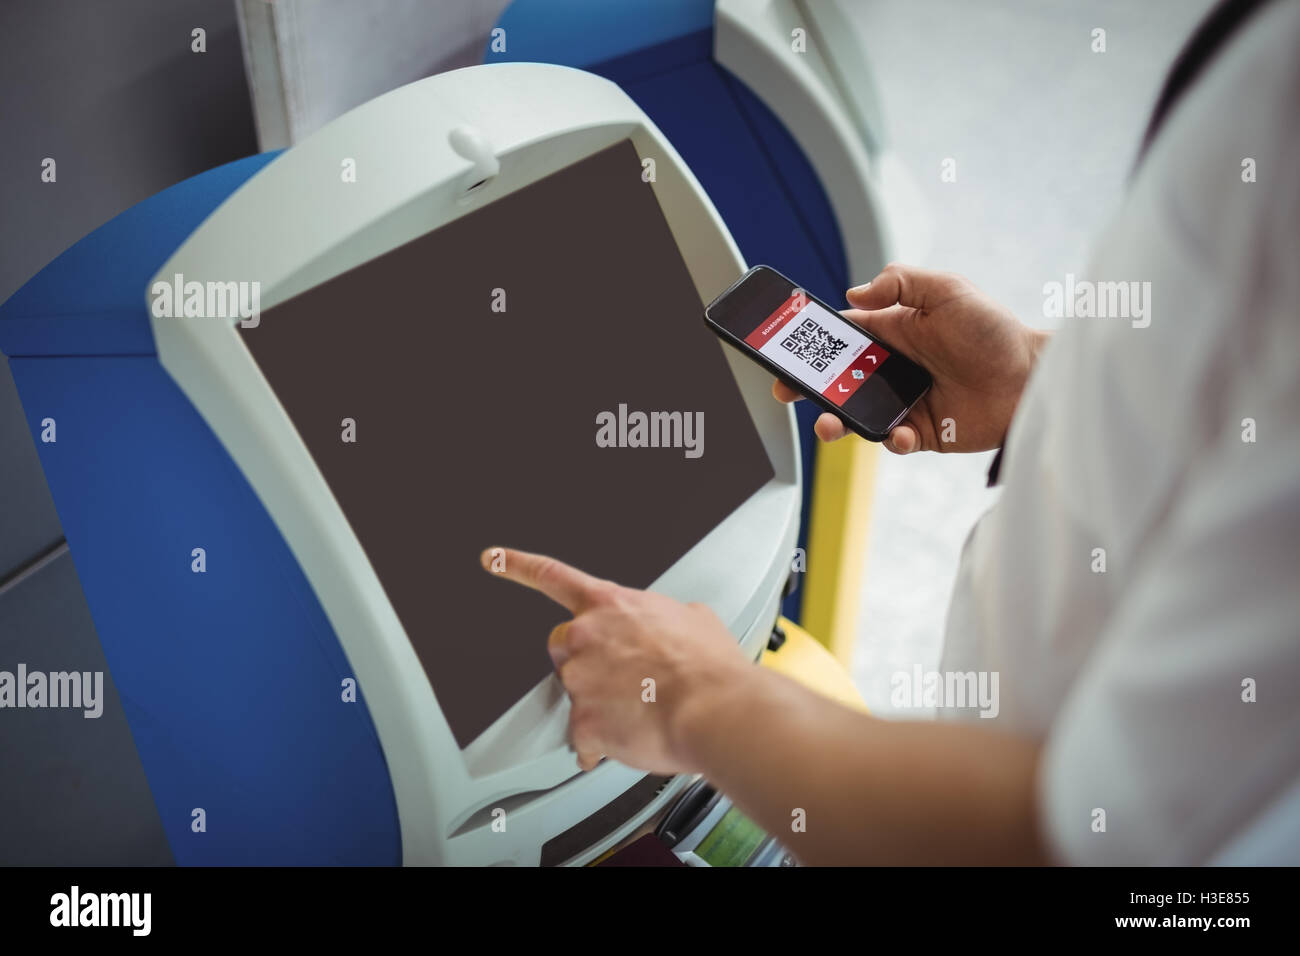 Traveller using self service check-in machine - Stock Image